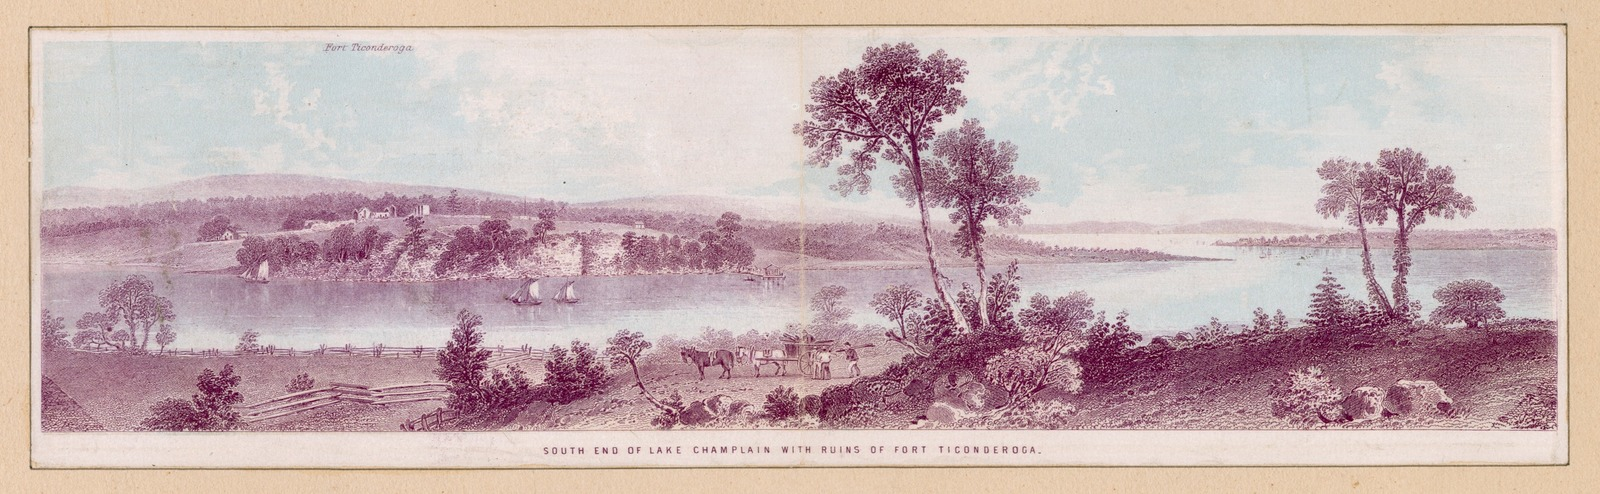 South end of Lake Champlain with ruins of Fort Ticonderoga.